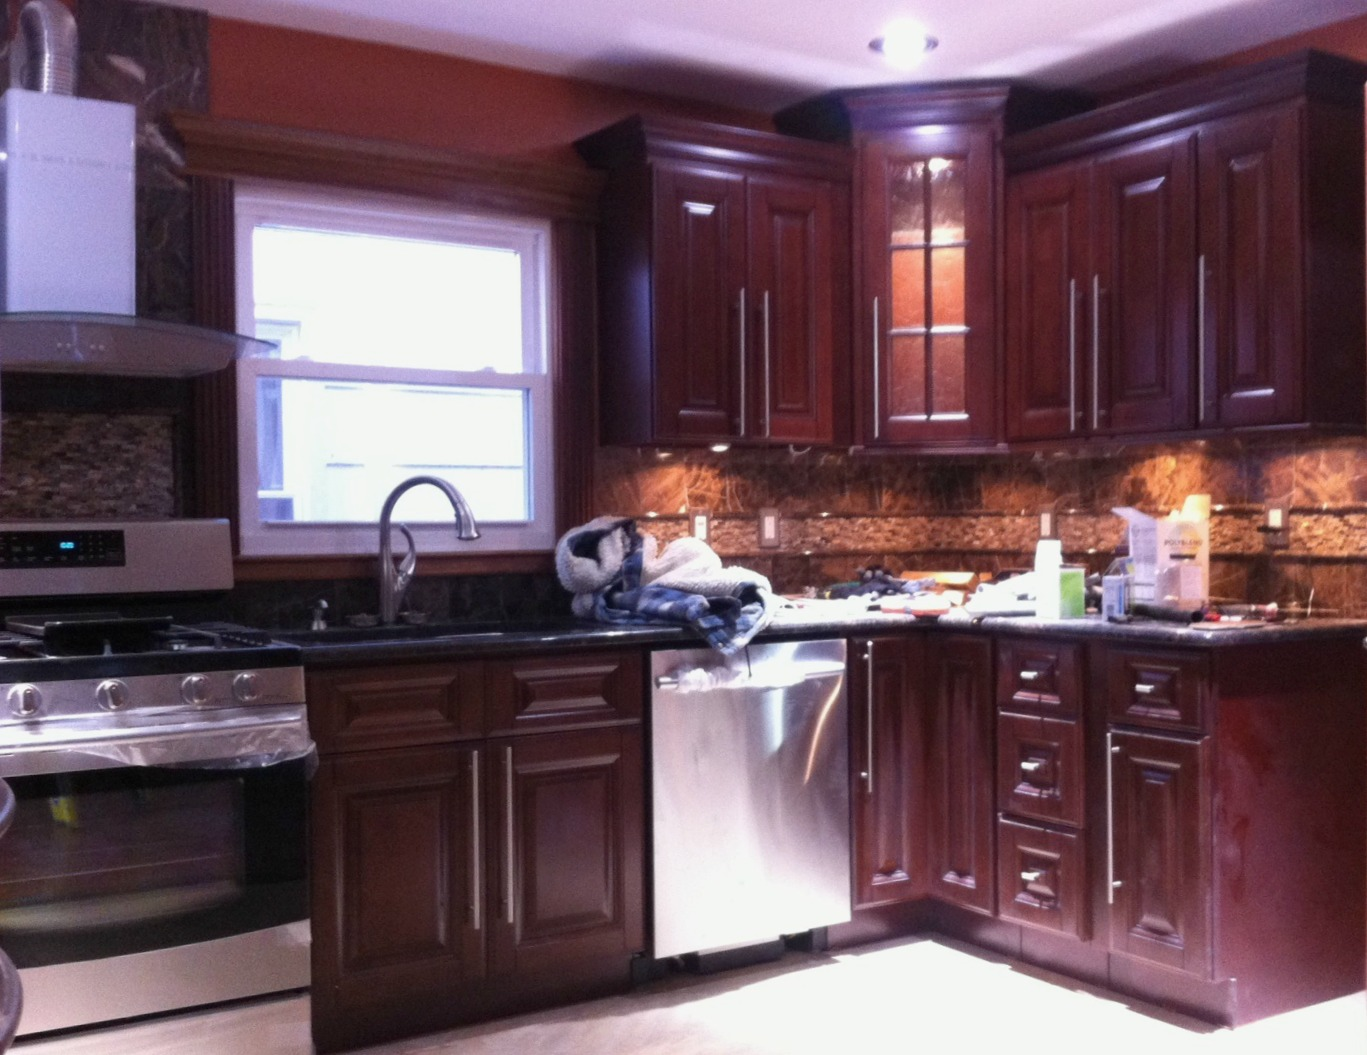 kitchen cabinets perth amboy nj kitchen cabinets perth amboy nj image to u 20985